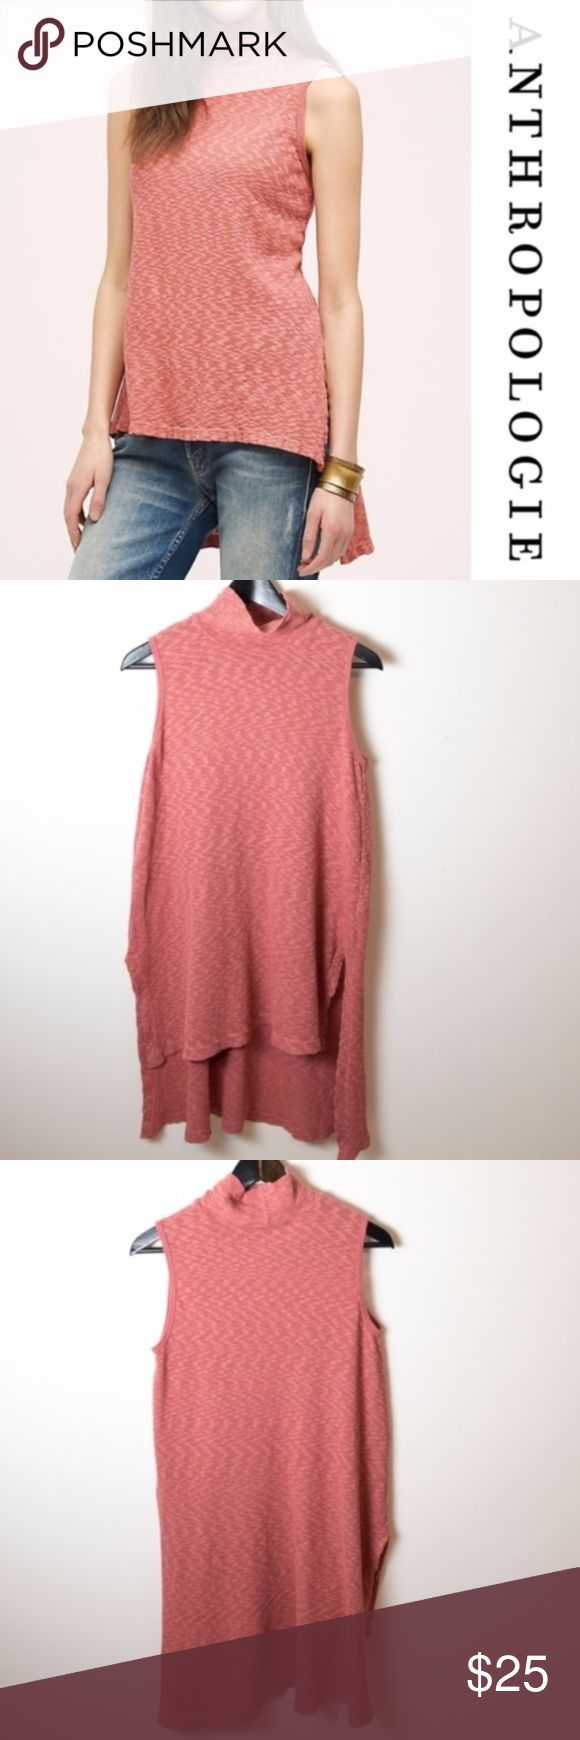 Anthropologie High Low Pink Tunic Left Of Center Left of Center tunic from Anthropologie. Rouge Red (I'm going to go with salmon or pink on the color). Sleeveless high low tunic with turtleneck. Size XS. Nubby cotton, pullover styling. Great piece with leggings, skinny jeans or a pencil skirt. Good preloved condition. No noticeable holes, stains or rips. Anthropologie Tops Tunics